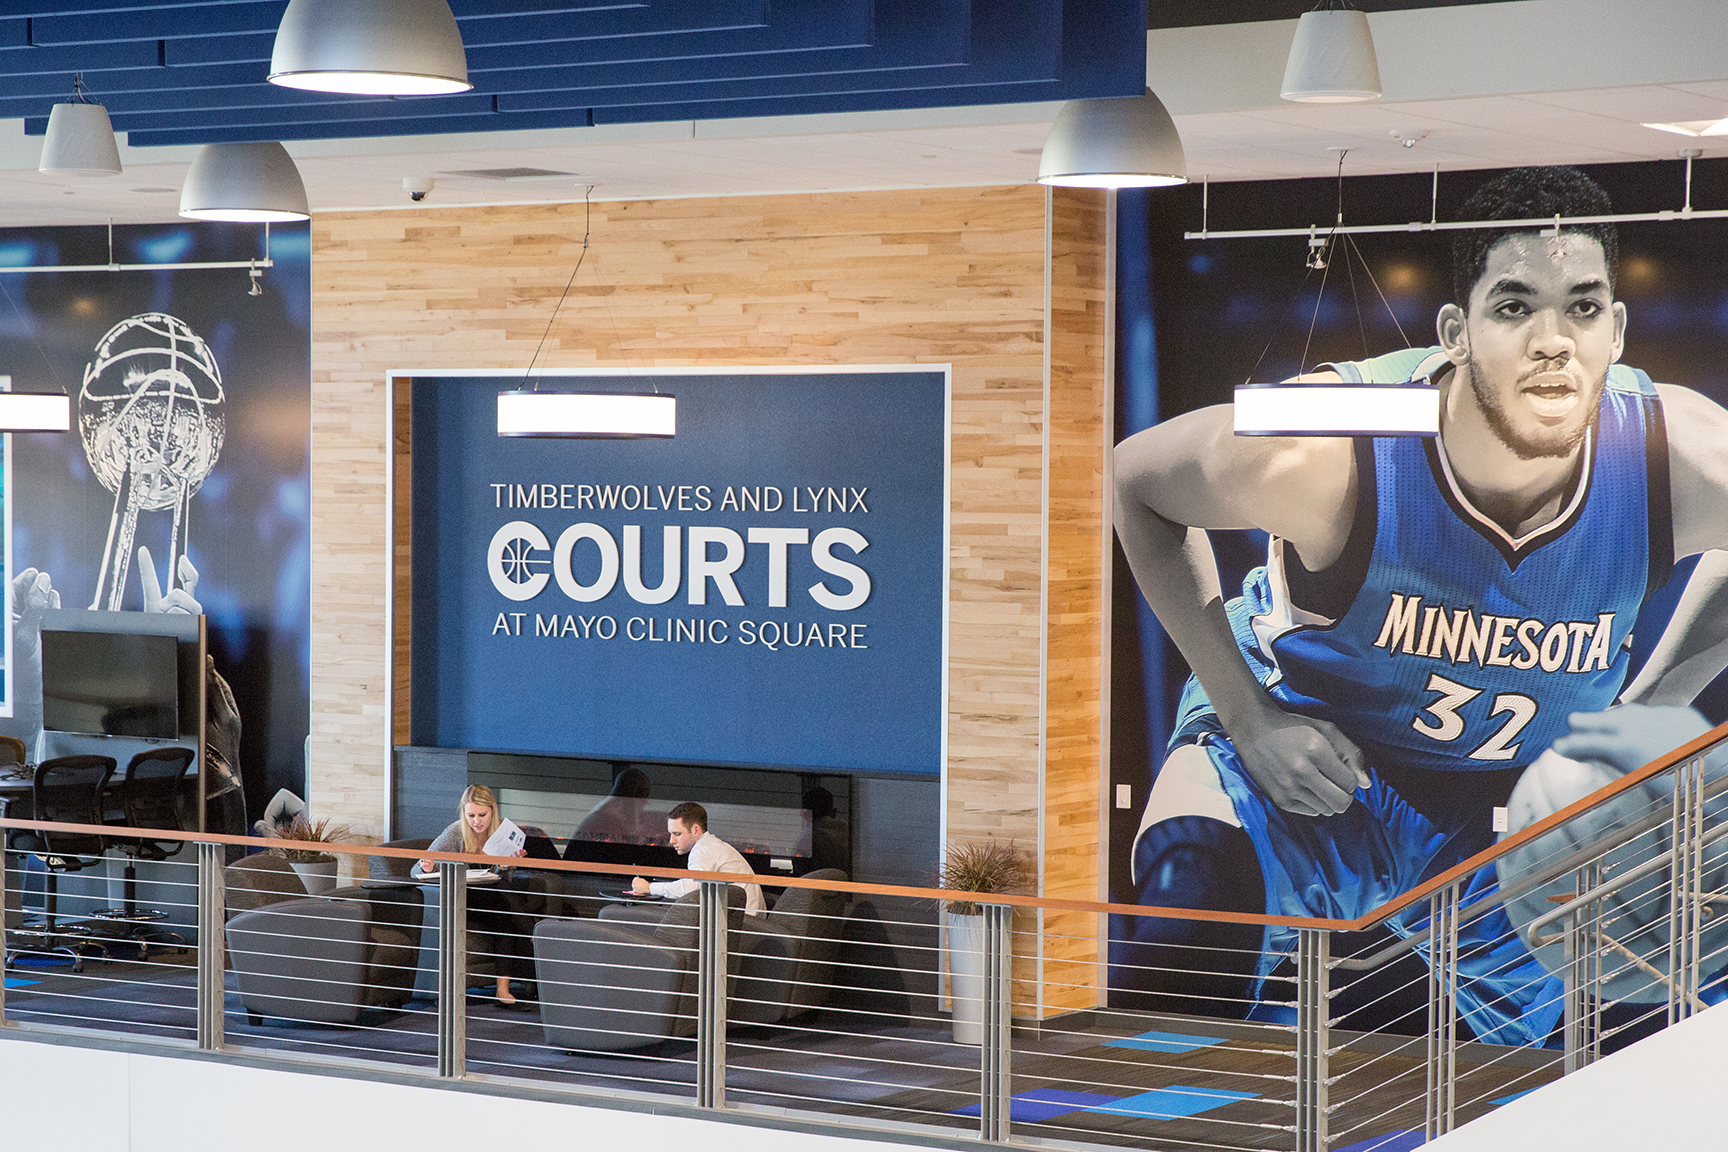 Timberwolves and Lynx Office Space